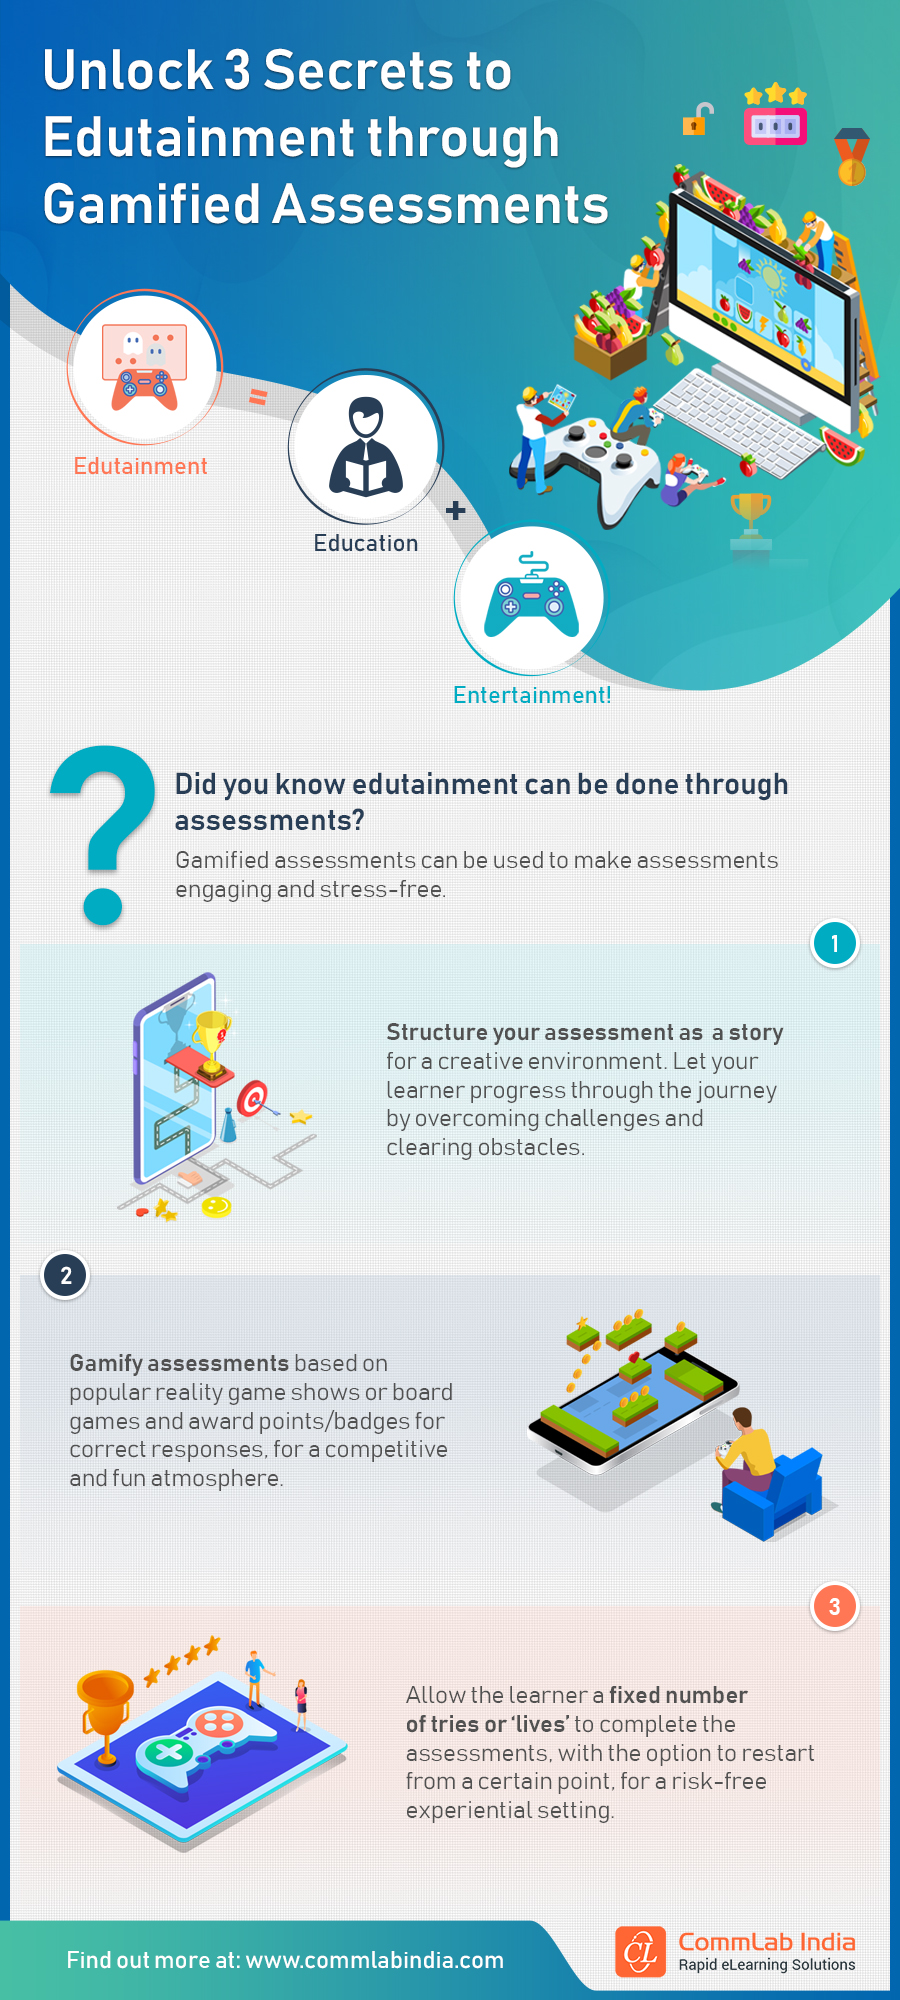 Unlock 3 Secrets to Edutainment through Gamified Assessments [Infographic]